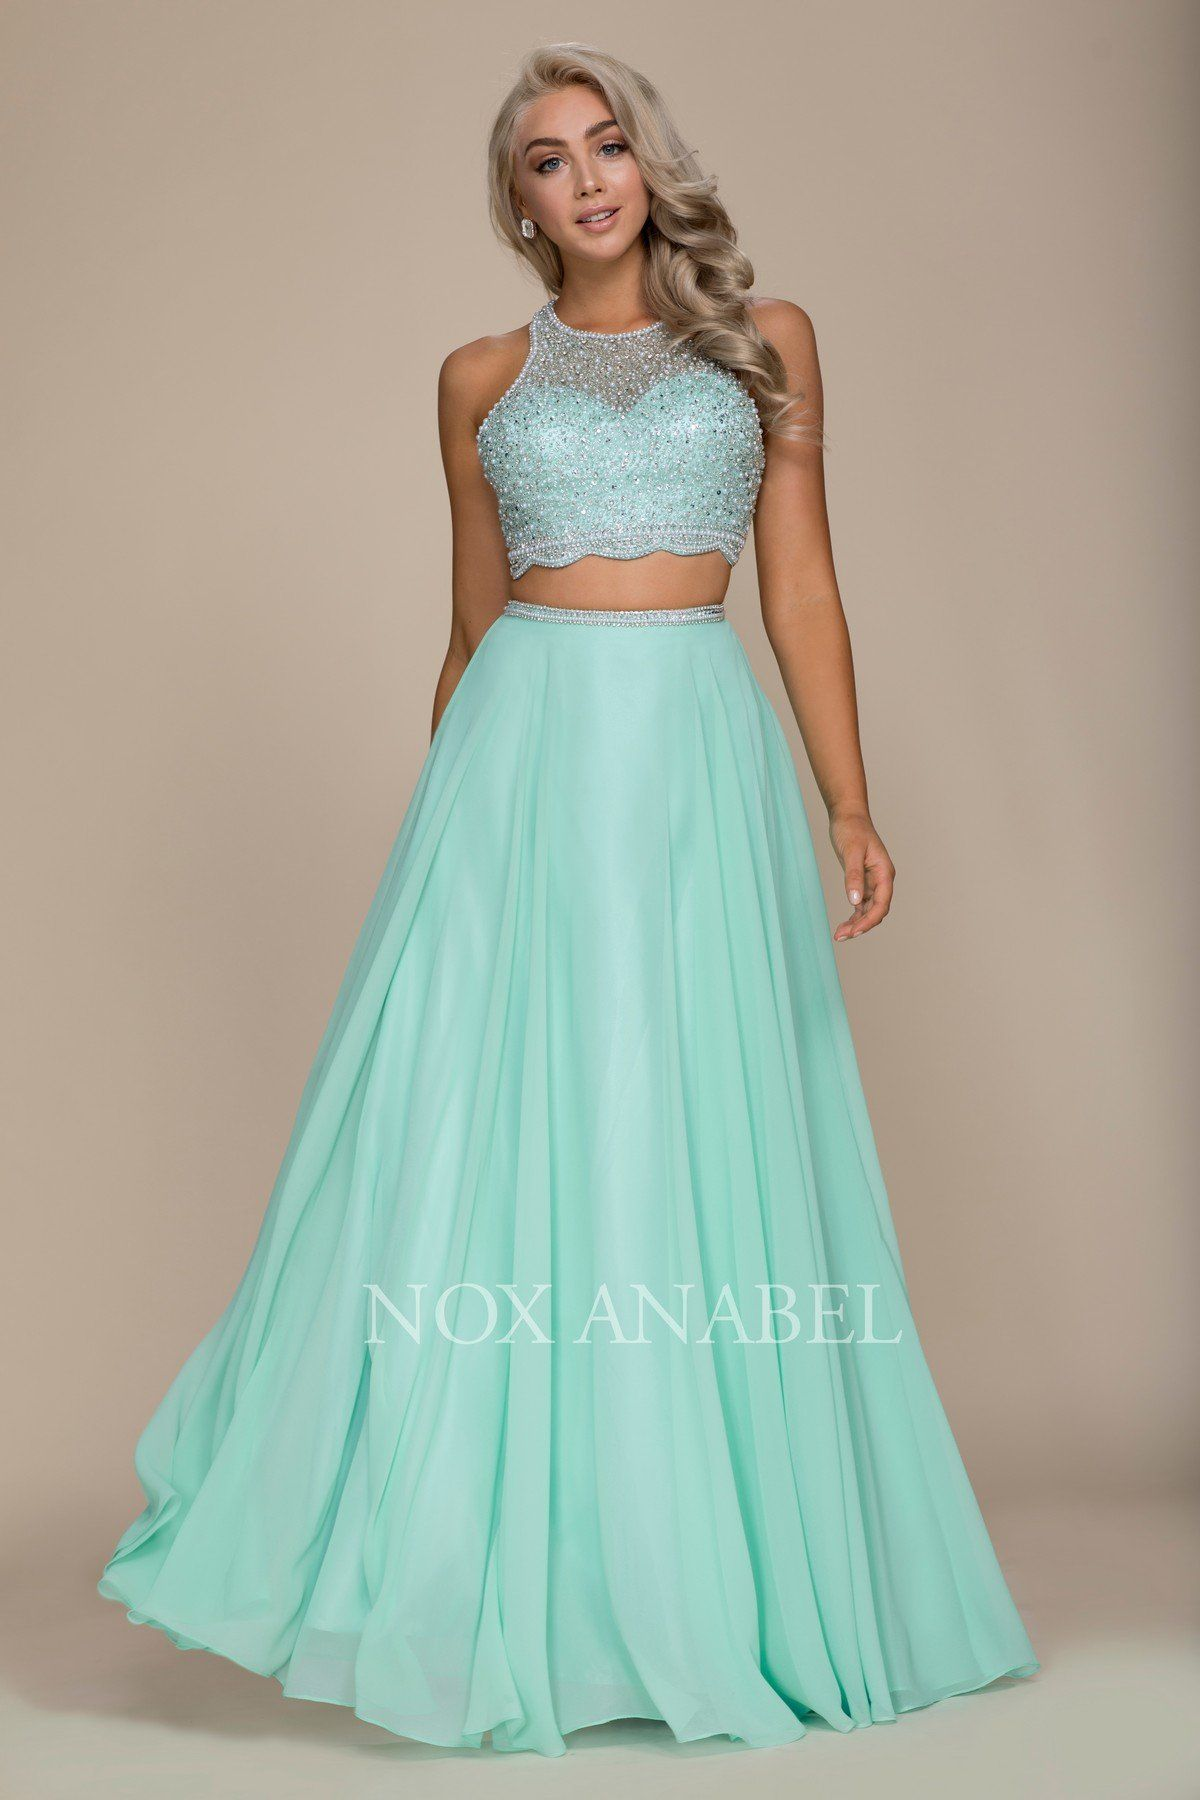 42++ Cropped prom dress ideas in 2021